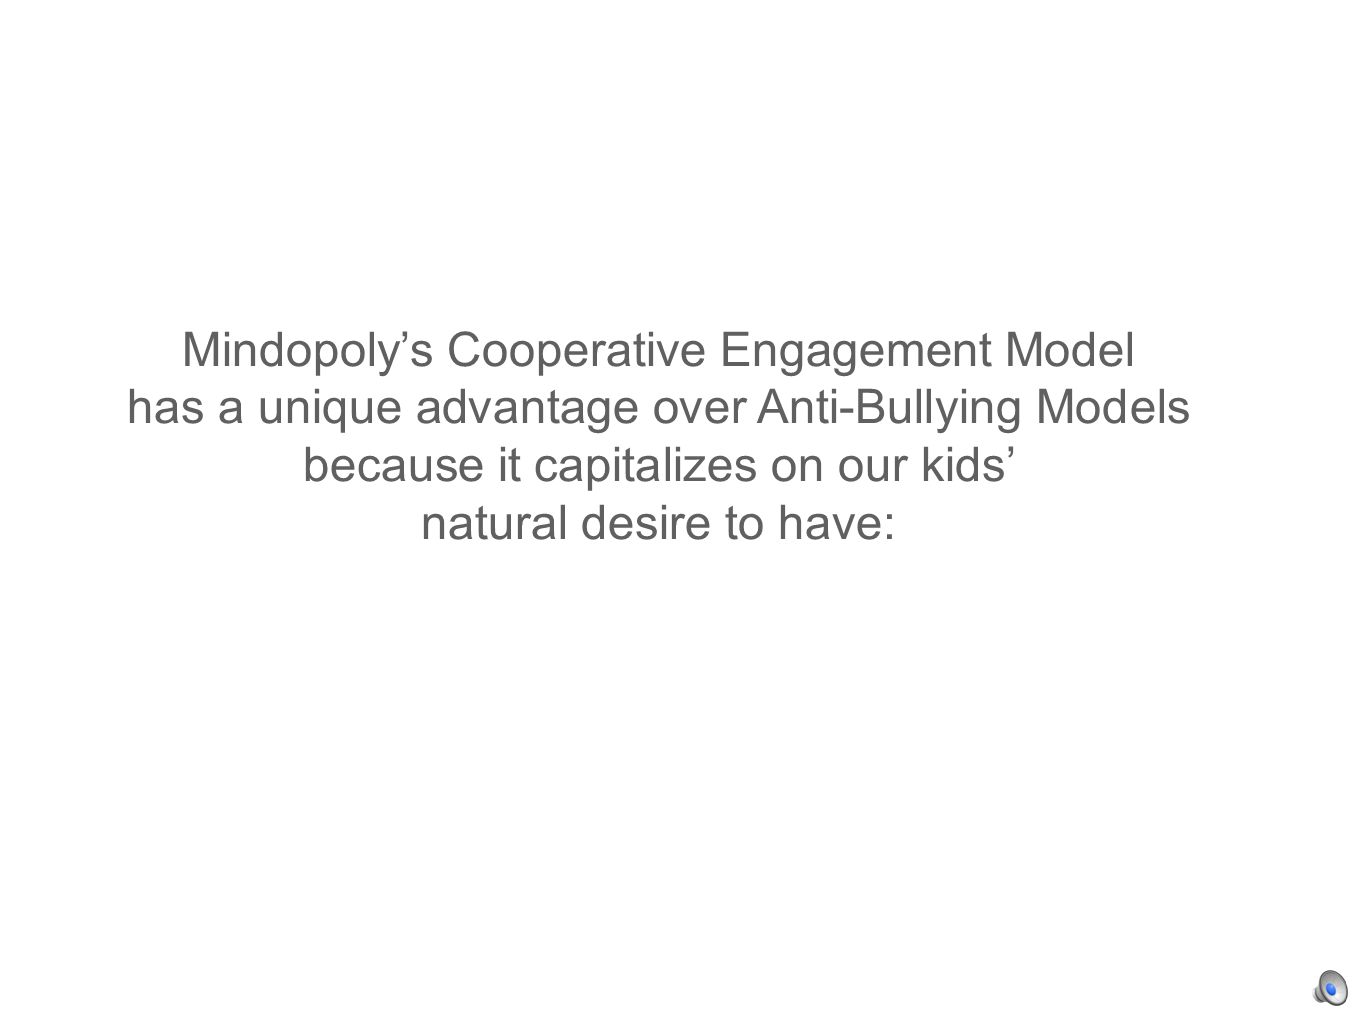 Mindopolys Cooperative Engagement Model has a unique advantage over Anti-Bullying Models because it capitalizes on our kids natural desire to have: